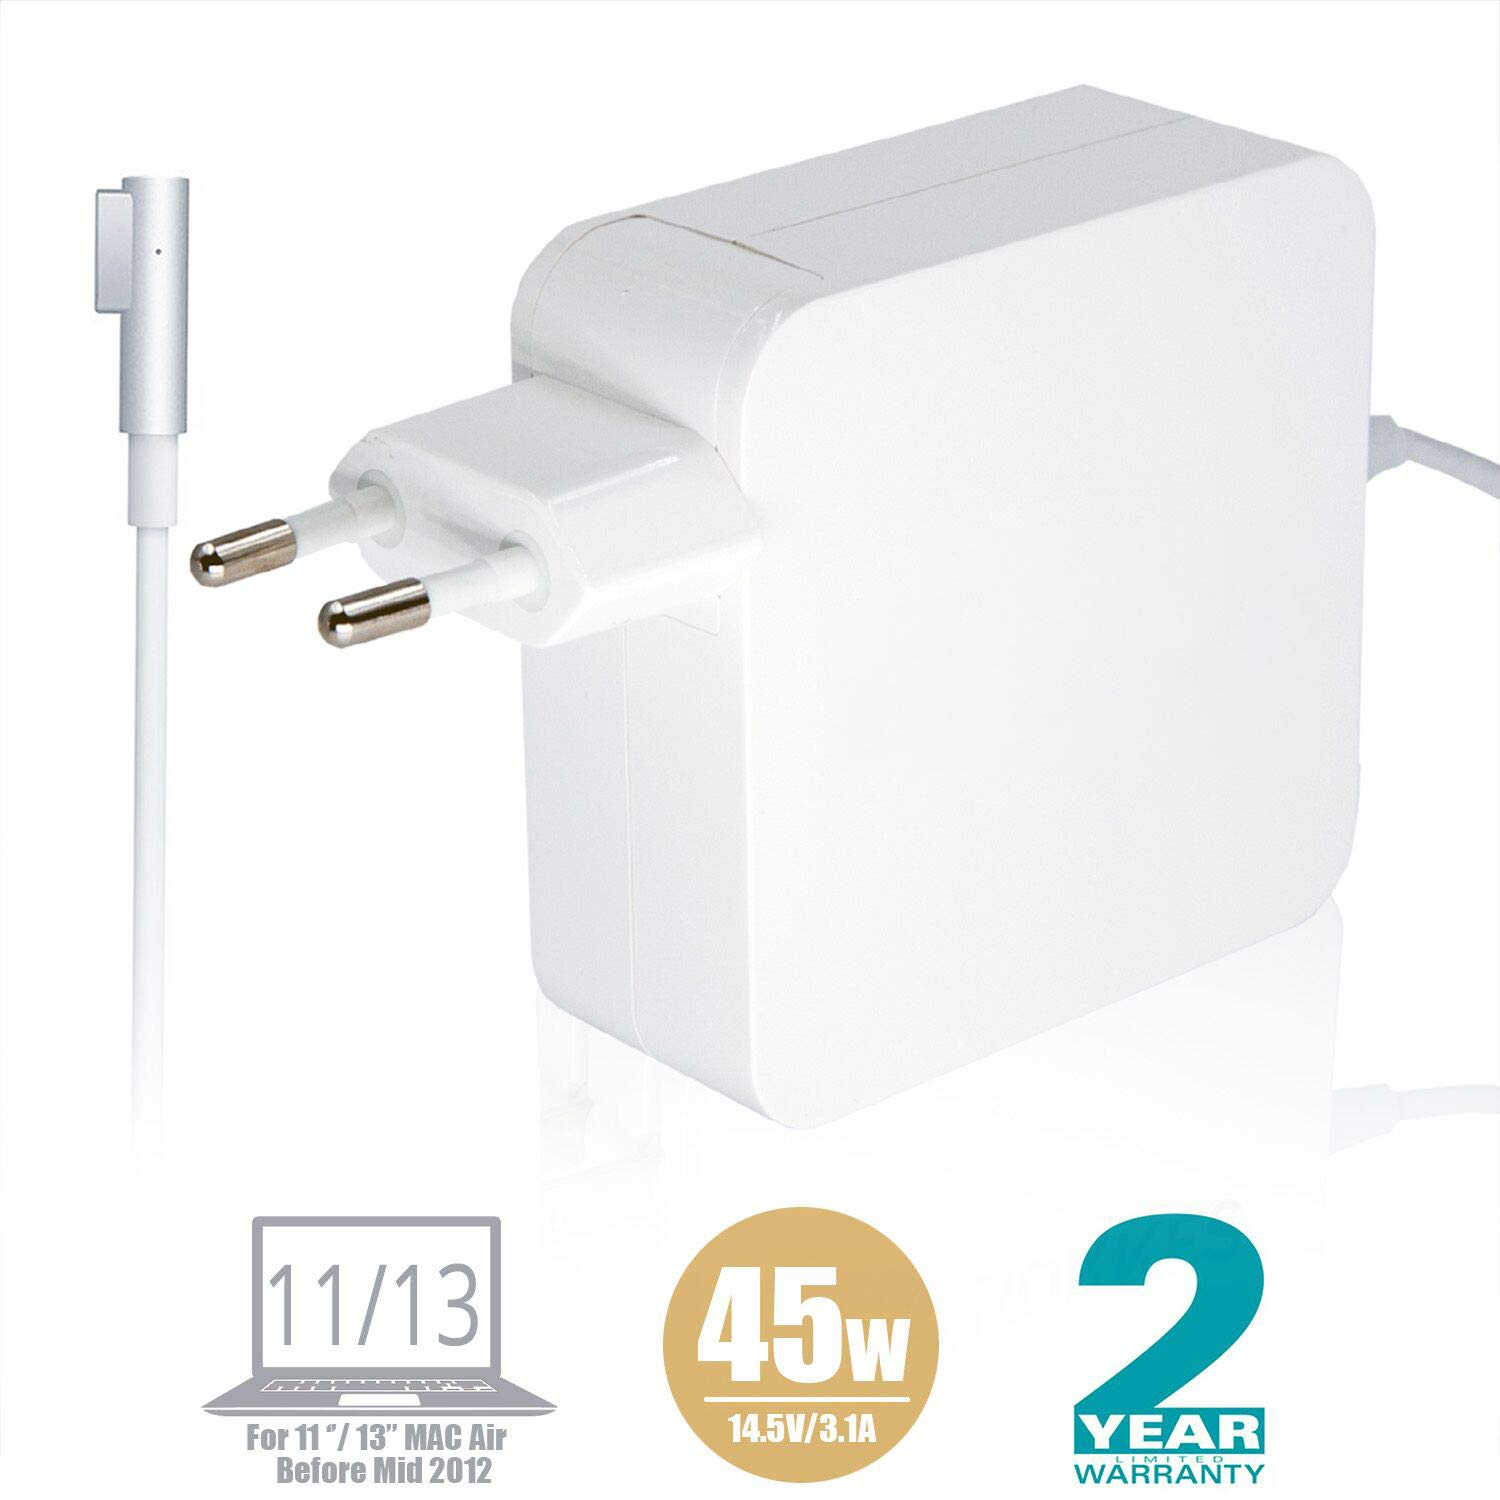 MacBook Air Cargador Adaptador - rokkes 45 W MagSafe L de ...